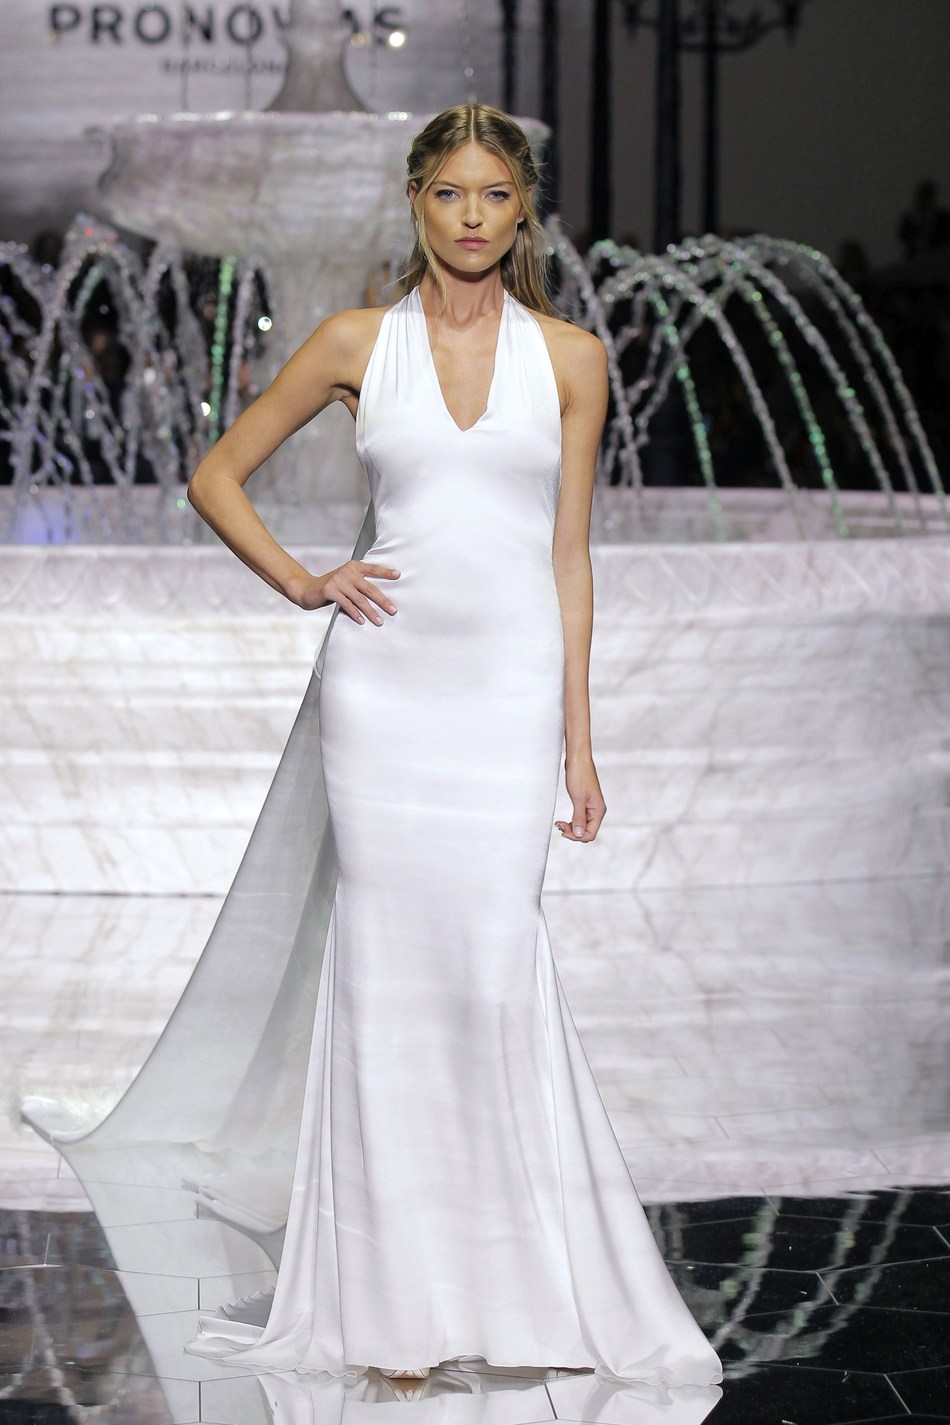 MARTHA HUNT at the PRONOVIAS FASHION SHOW in Barcelona with the ROMA dress from the 2018 ATELIER PRONOVIAS COLLECTION